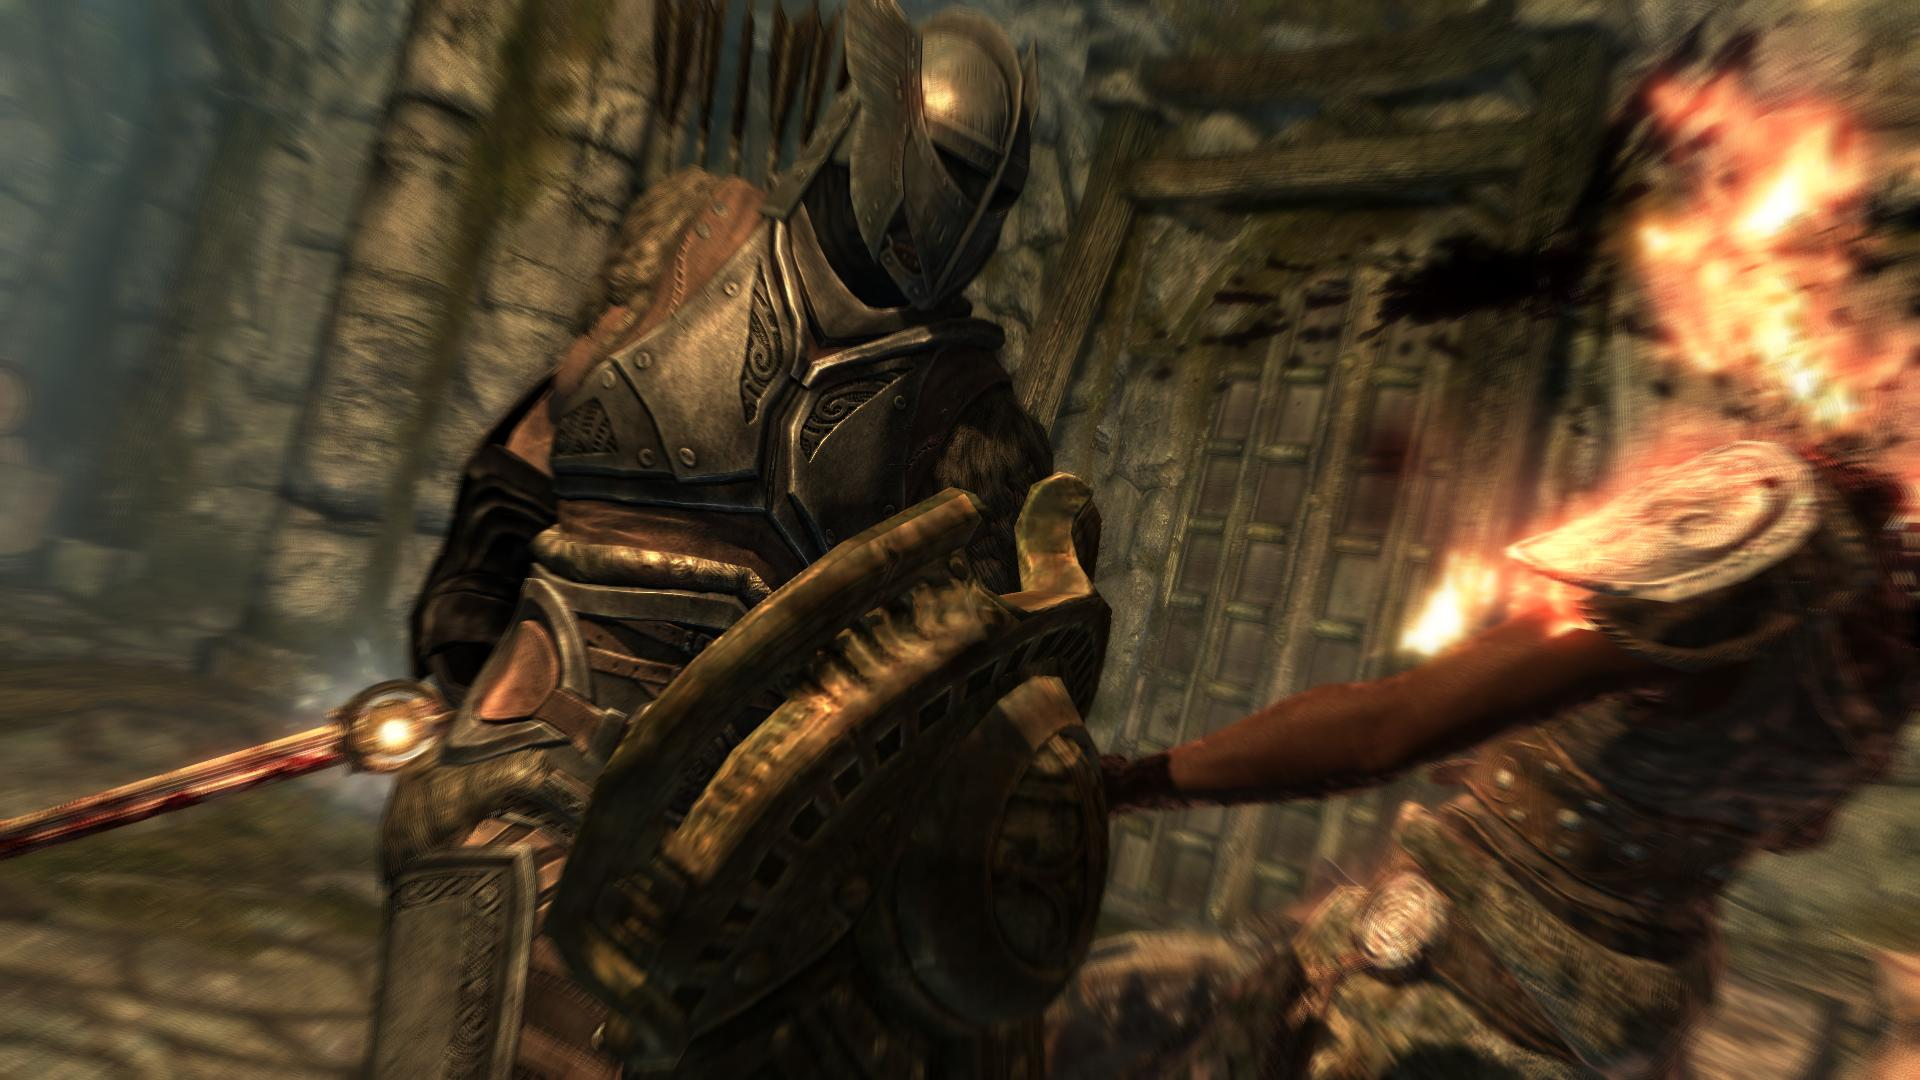 PS3 Skyrim Lag to Be Fixed with 1 4 Update